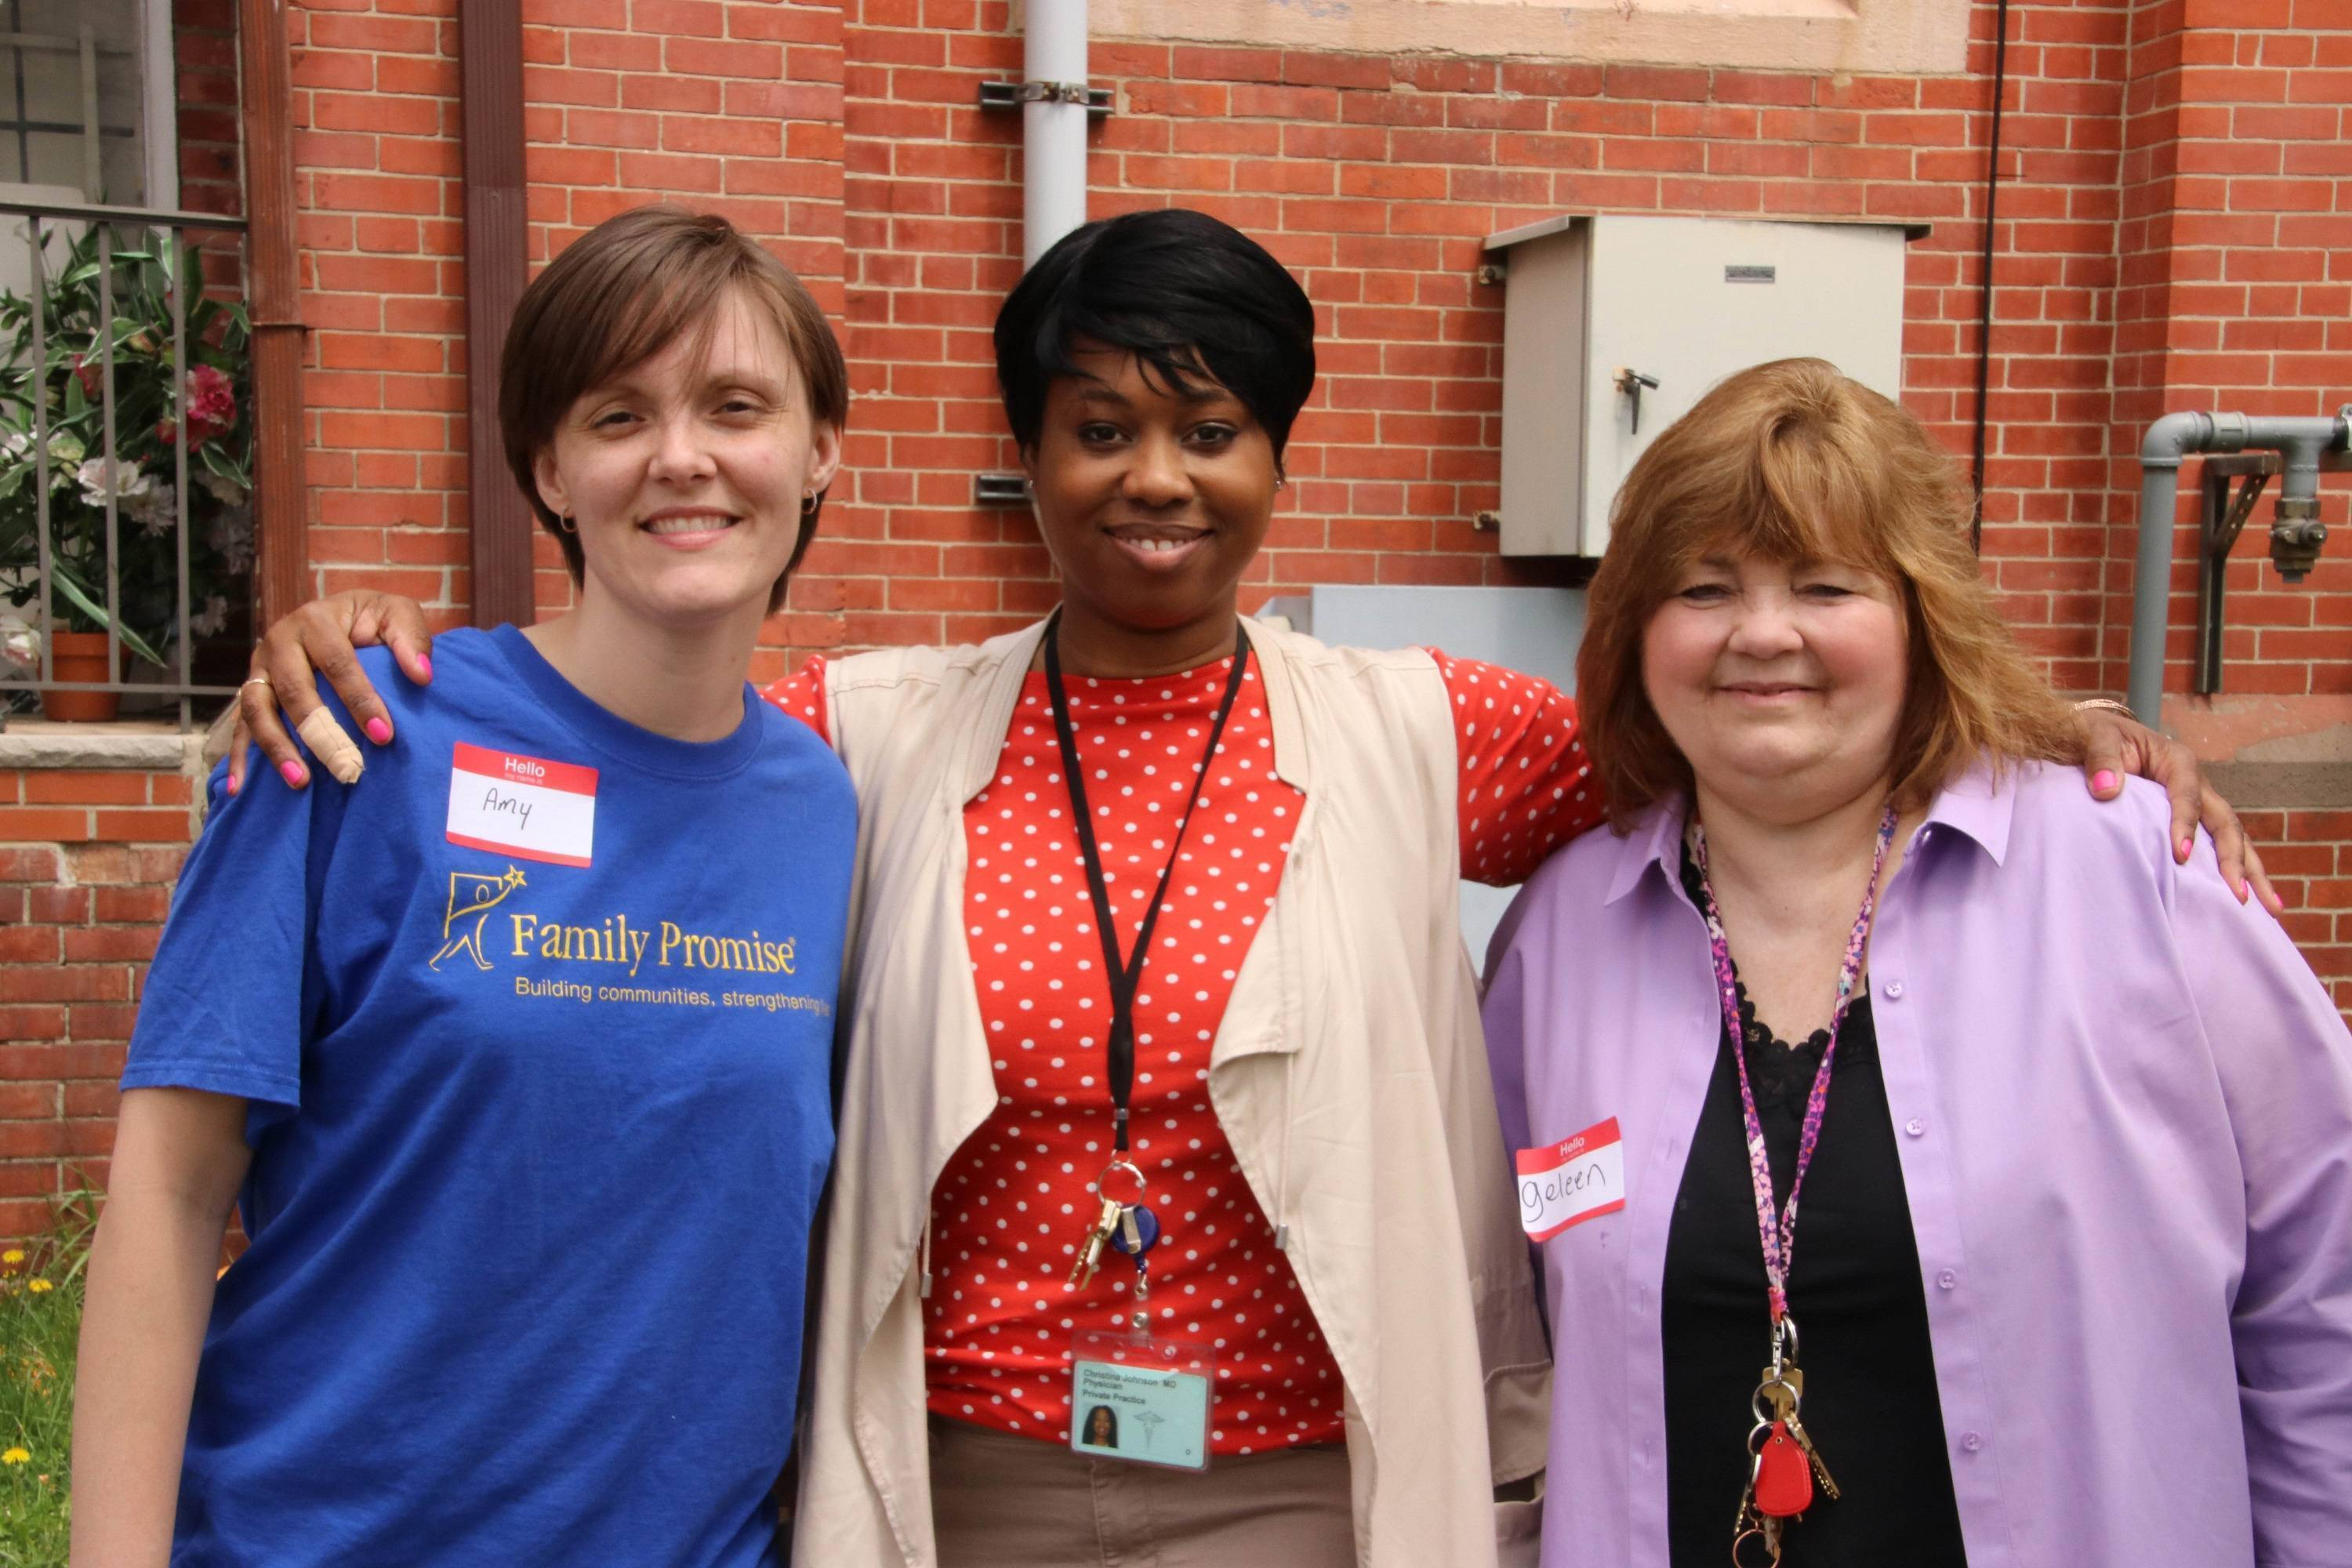 Family Promise, Overlook Partner for Fourth Annual Community Day & Health Fair Sept. 8